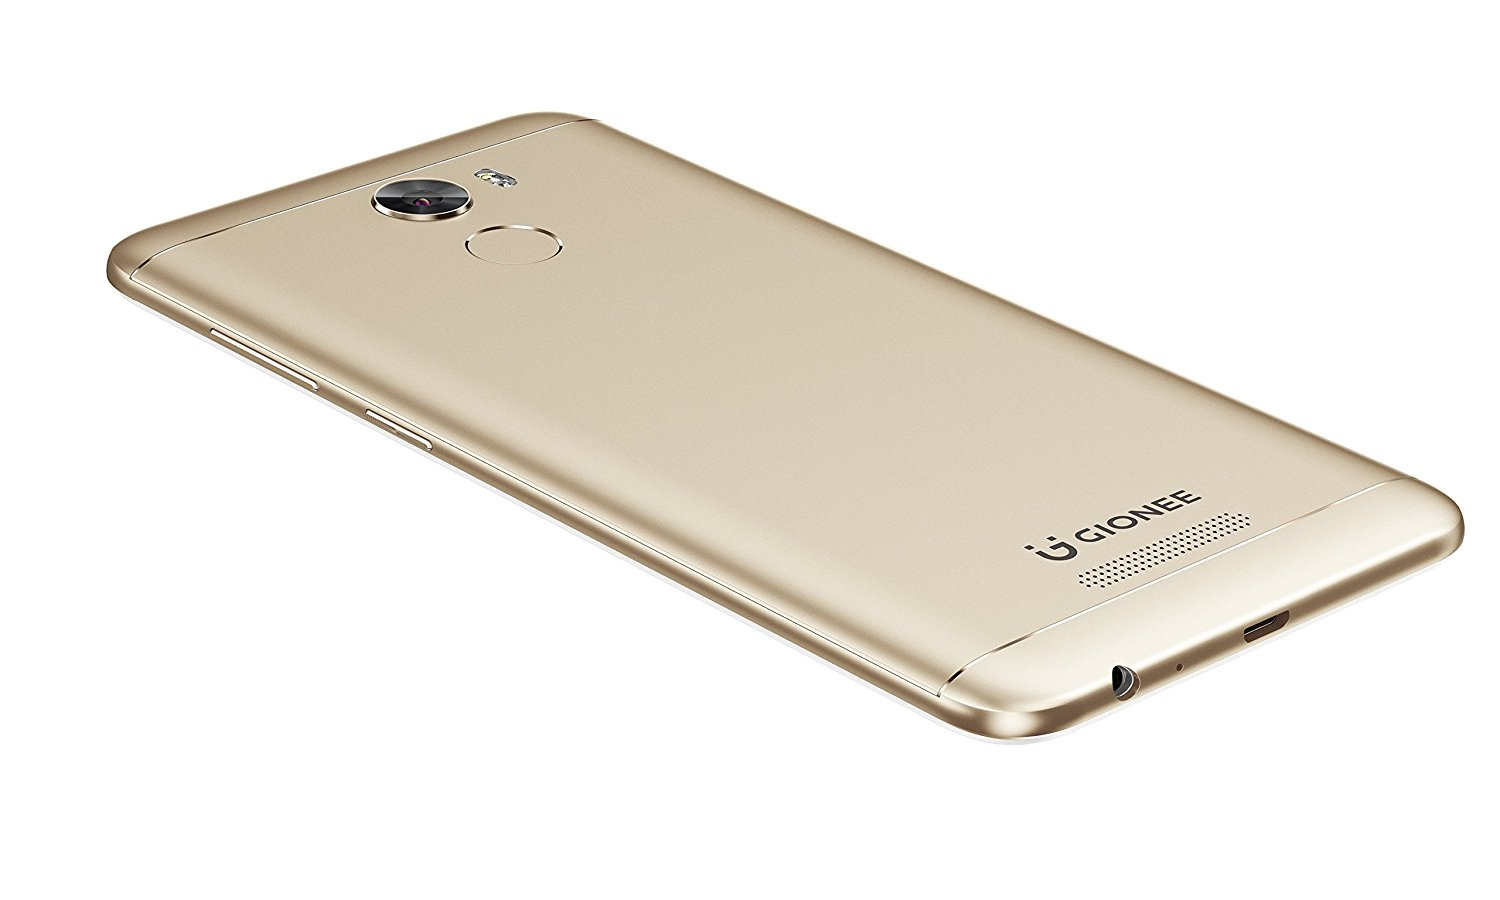 GIONEE A1 LITE Photos, Images and Wallpapers - MouthShut com